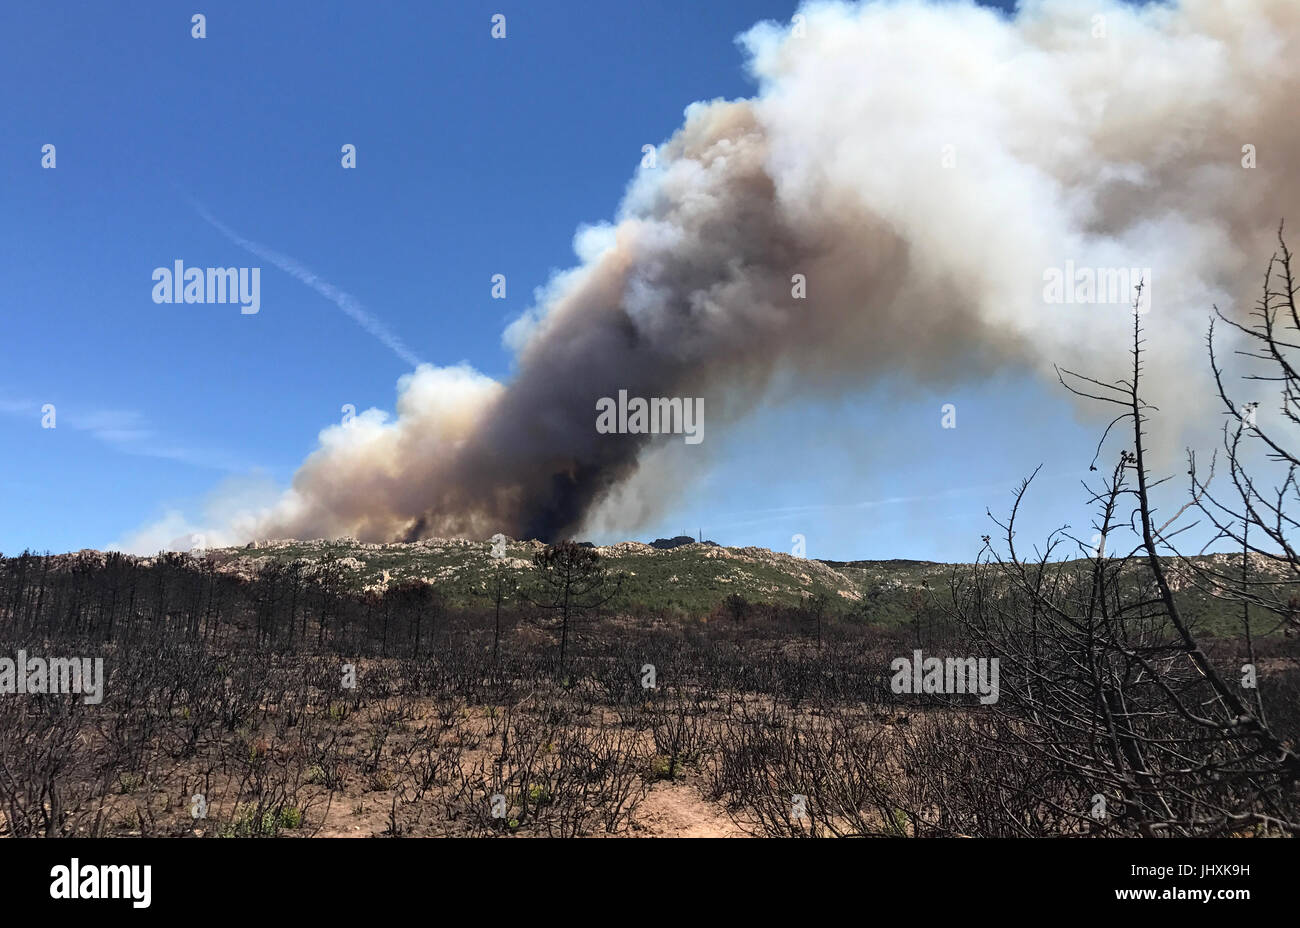 Corsica, France. 17th July, 2017. Clouds of smoke from a forest fire rise ahead of burned shrubs, a few kilometres Stock Photo